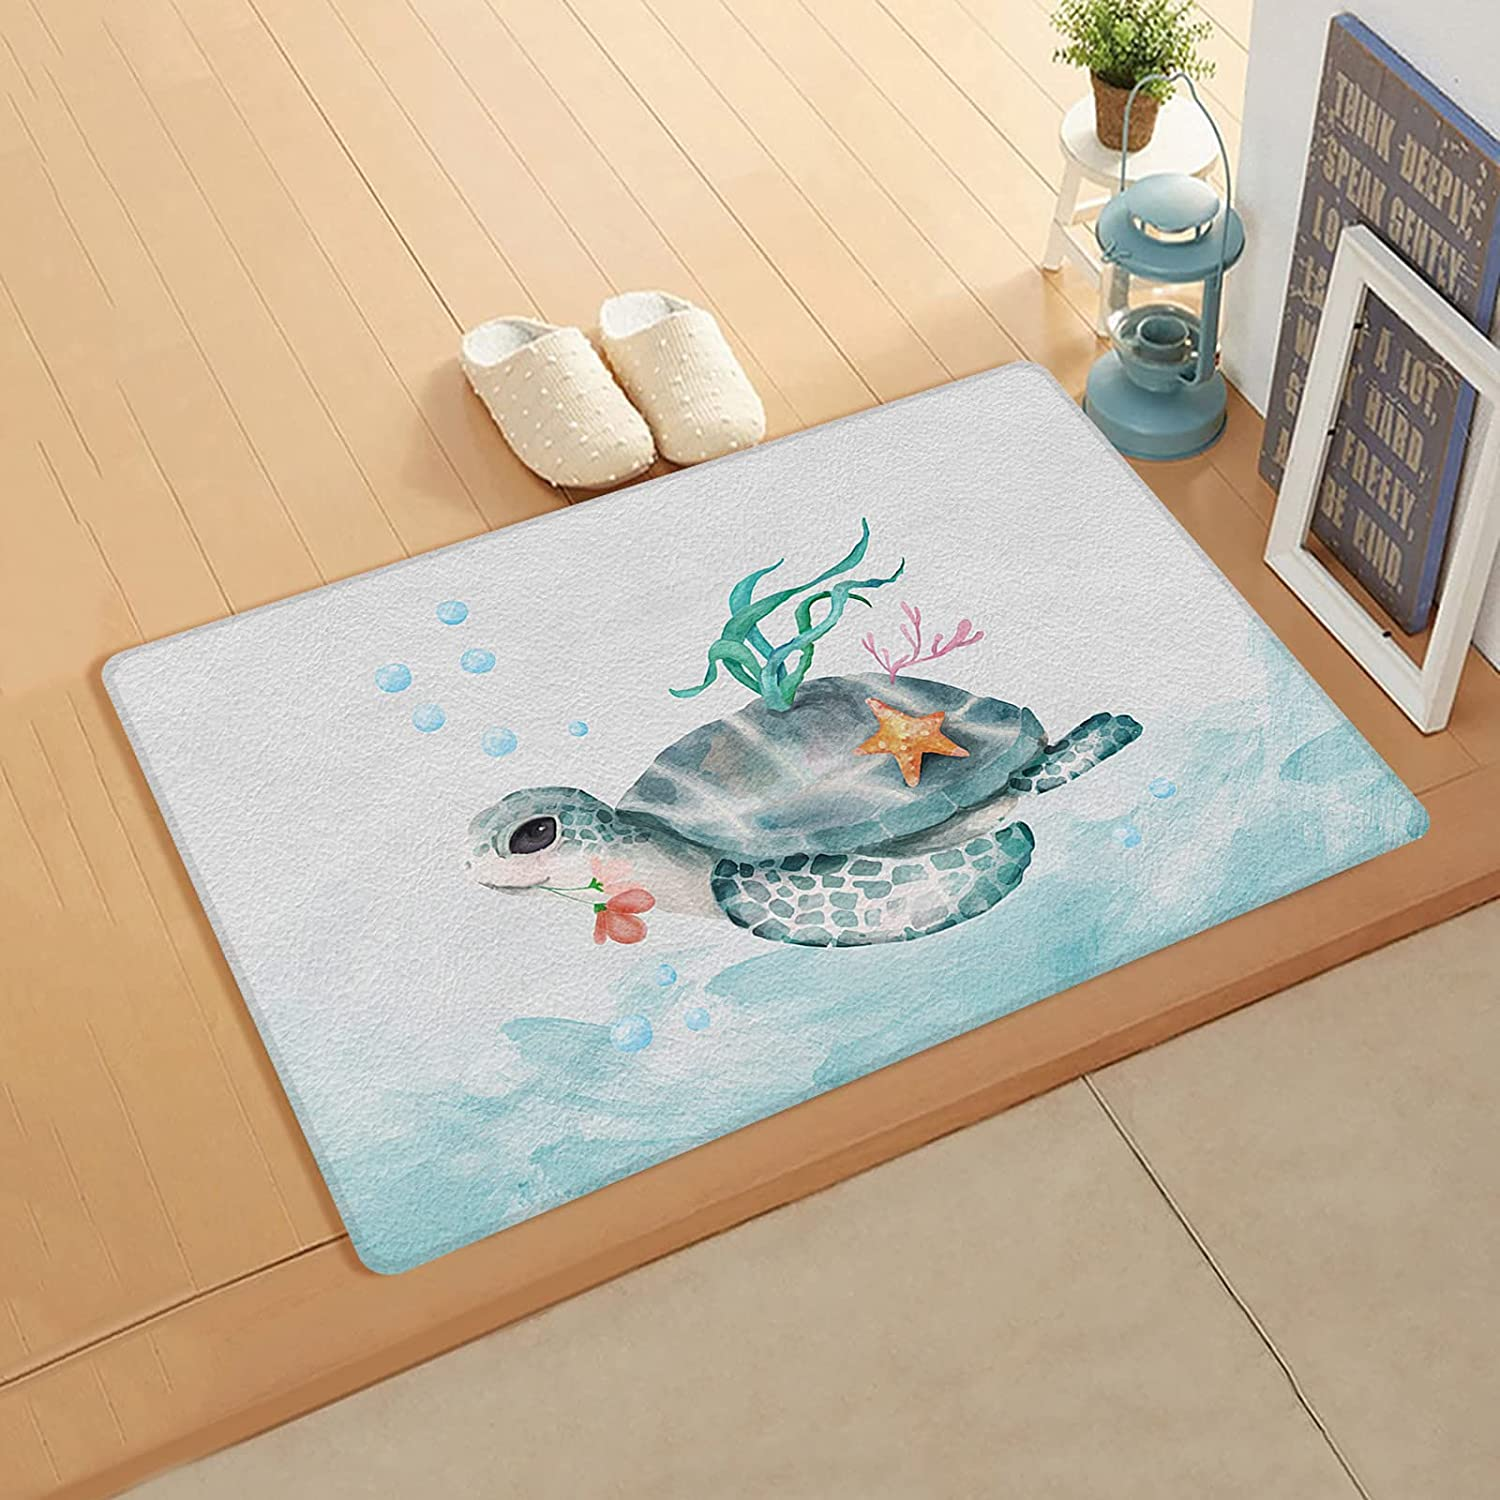 Gsypo Cushioned Anti Max 86% OFF Fatigue Kitchen Ocean safety Turtles Sea Vint Mat